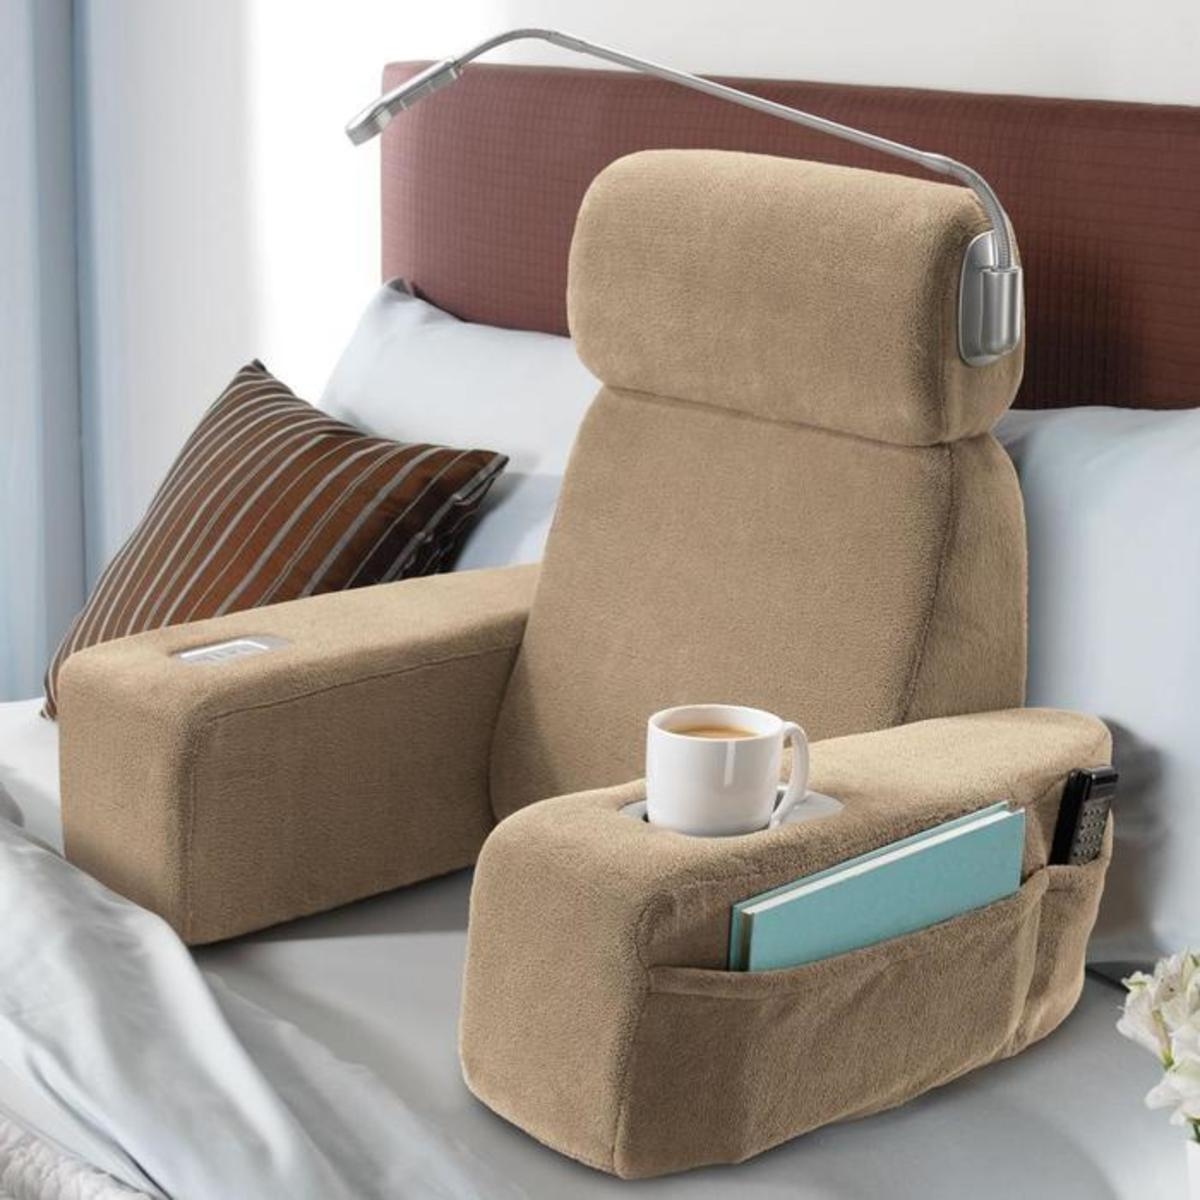 & The Best Reading Pillows on the Market | HubPages